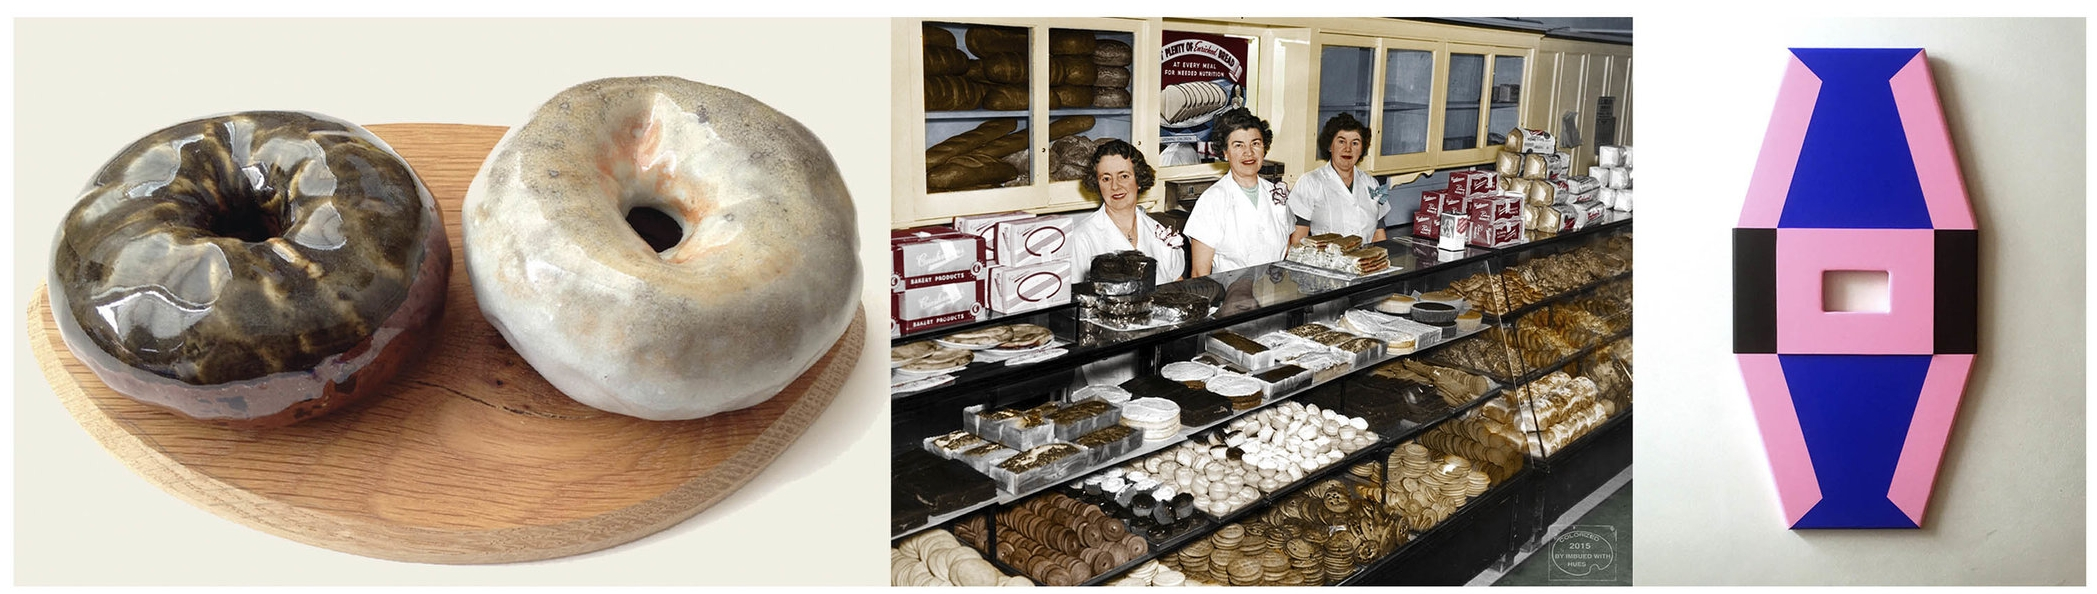 "Left to Right: Cary Lin,  Donuts 2 Dollars ; Maine Historical Society and the artist Patty Allison  ""Donuts & Treats, Cushman's Bakery, Portland, ca. 1940"" ; and Jon Merritt,  Crystalline Passage ."